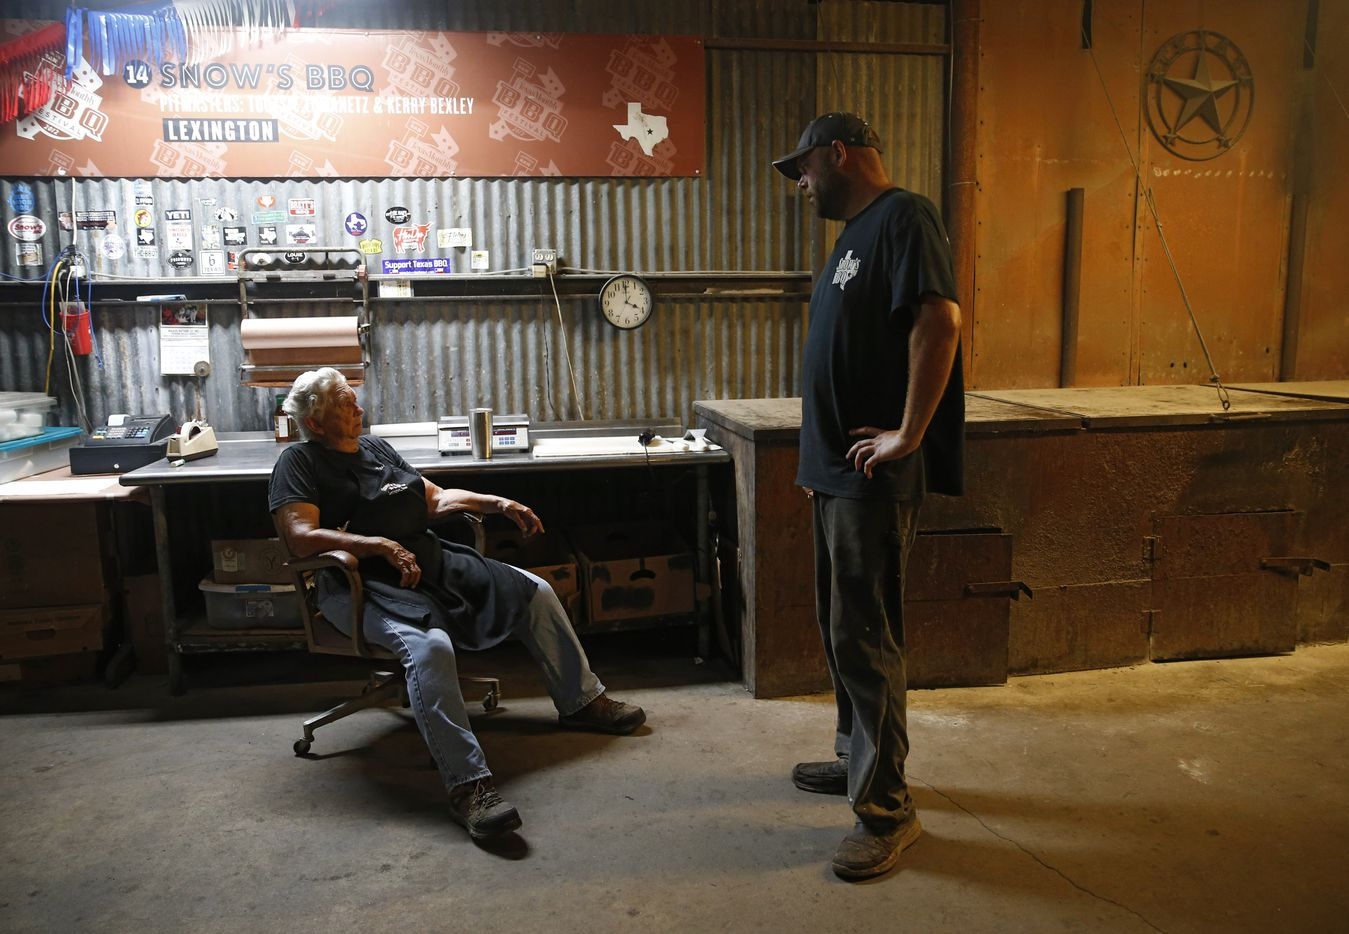 Tootsie Tomanetz and Clay Cowgill talk in between tending to the meat cooking in the early morning hours on Aug. 11.